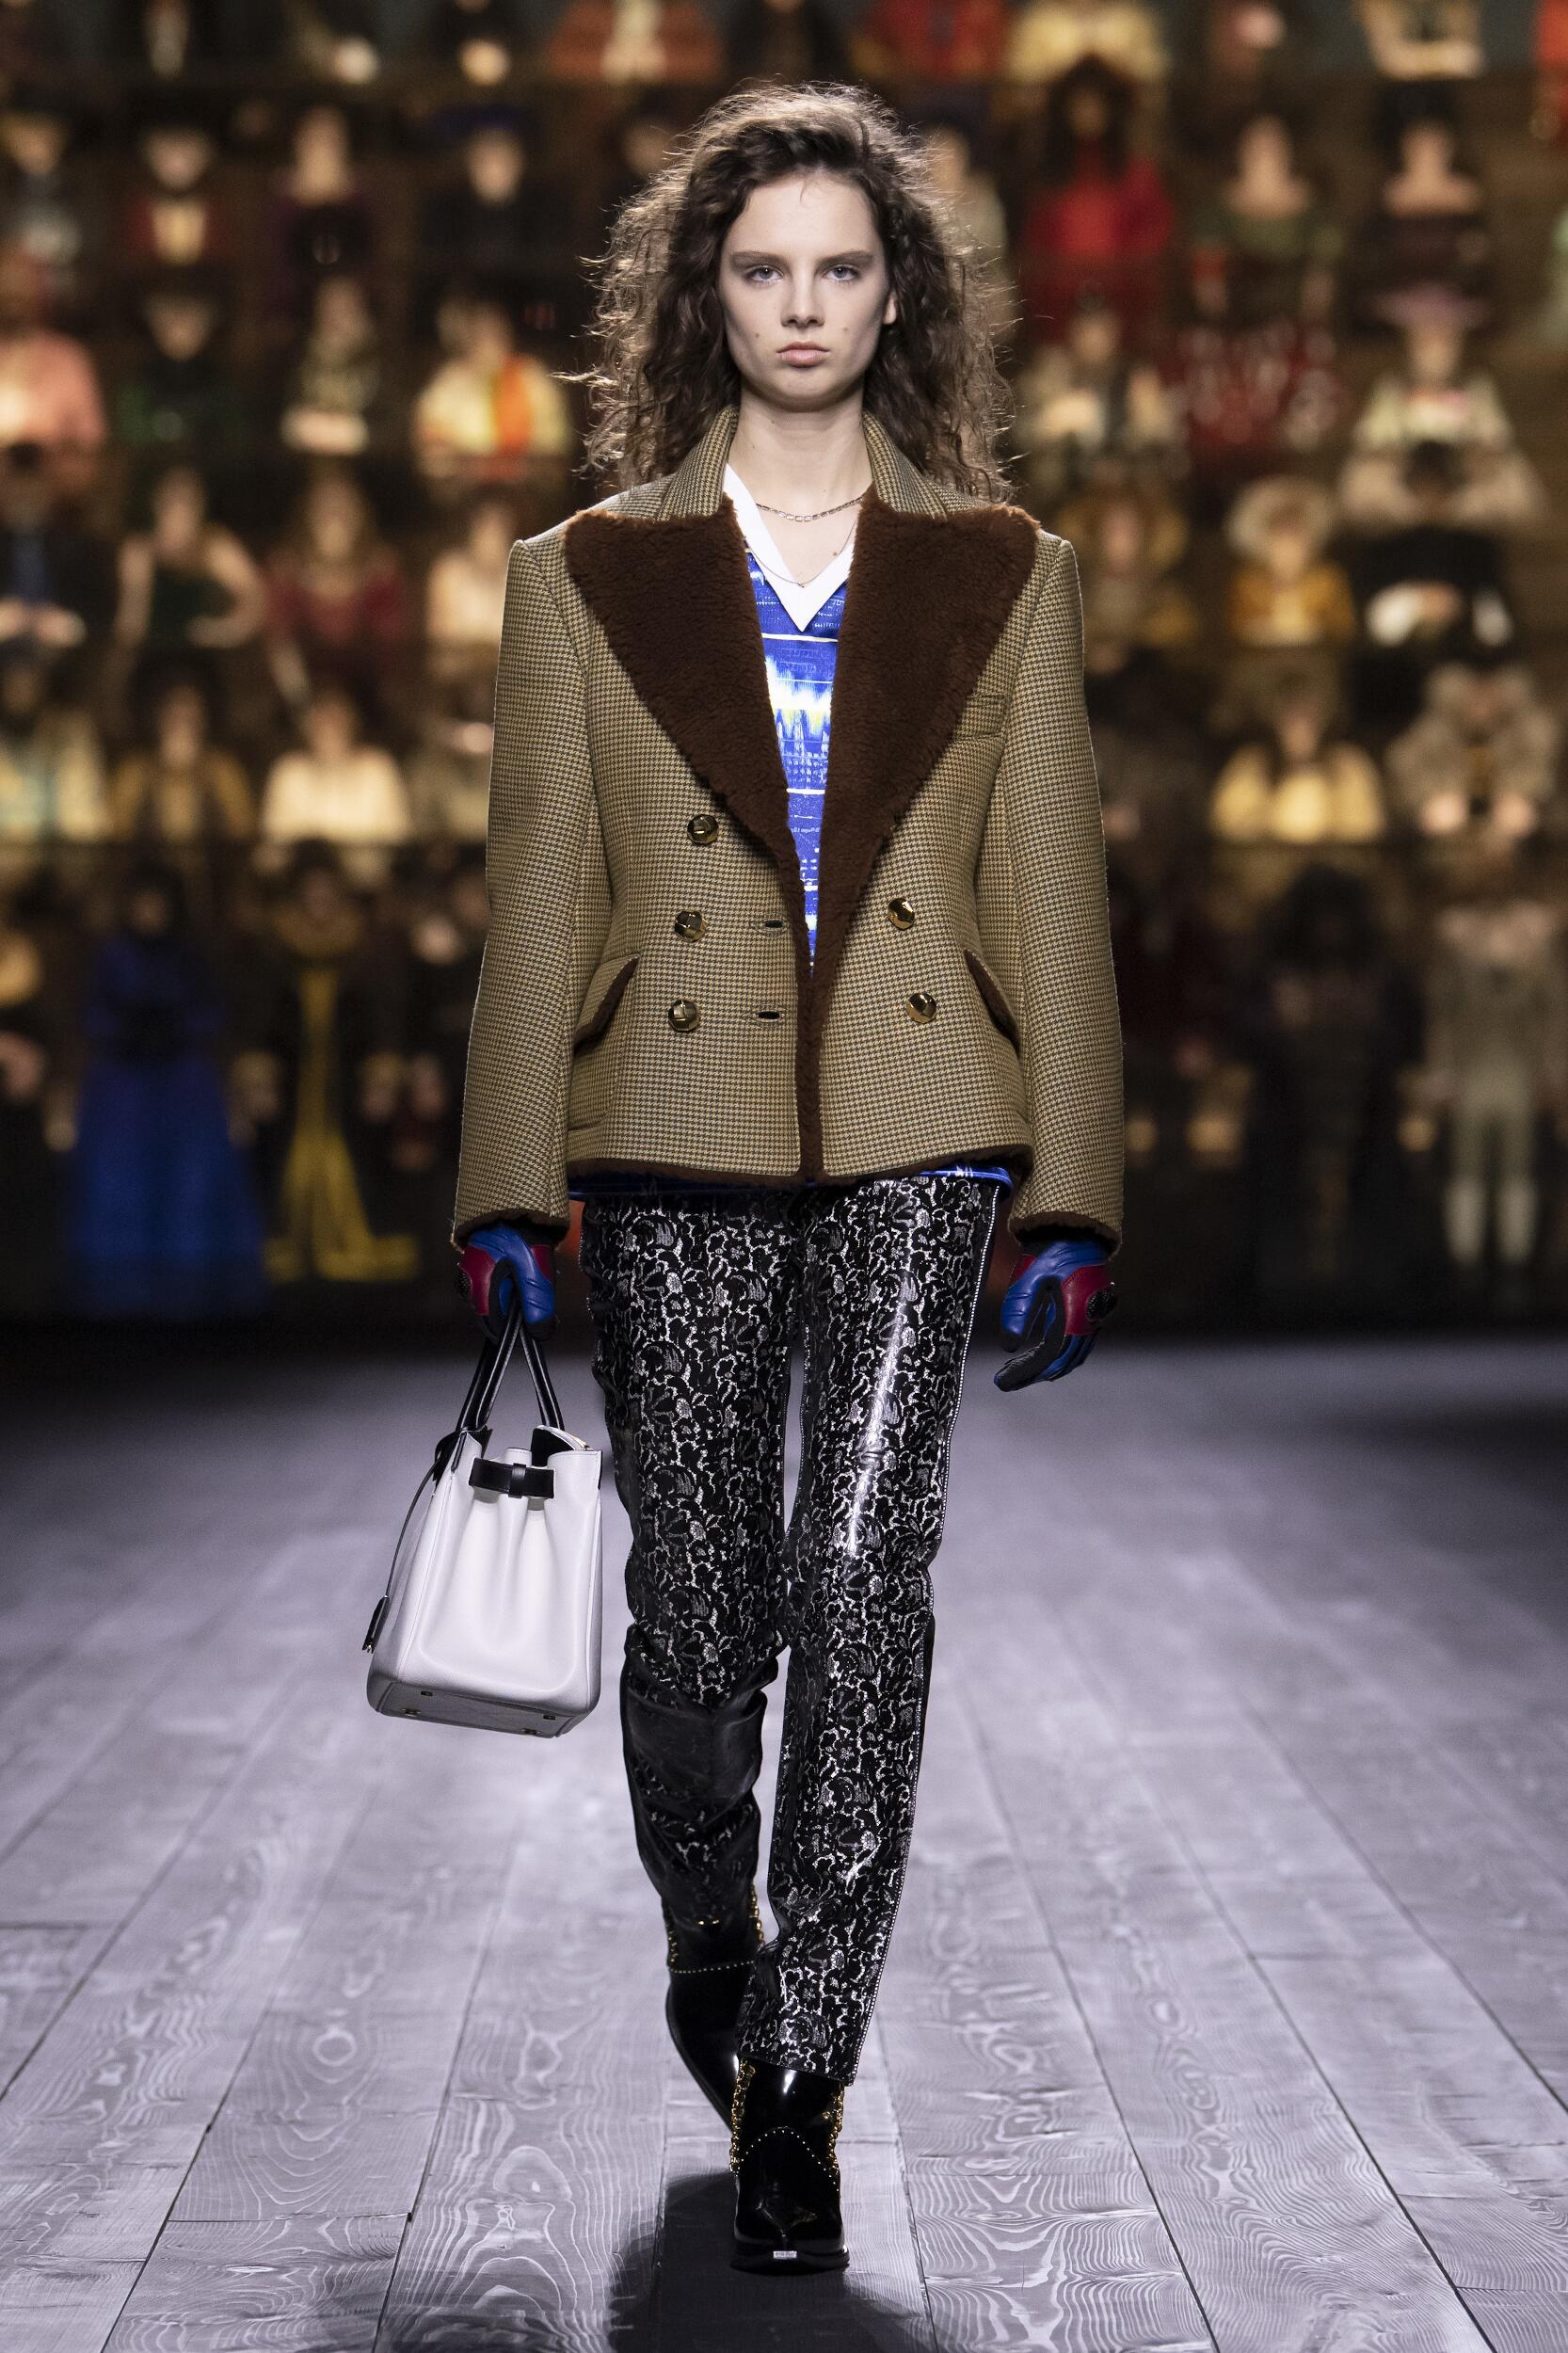 Louis Vuitton Paris Fashion Week Womenswear Trends